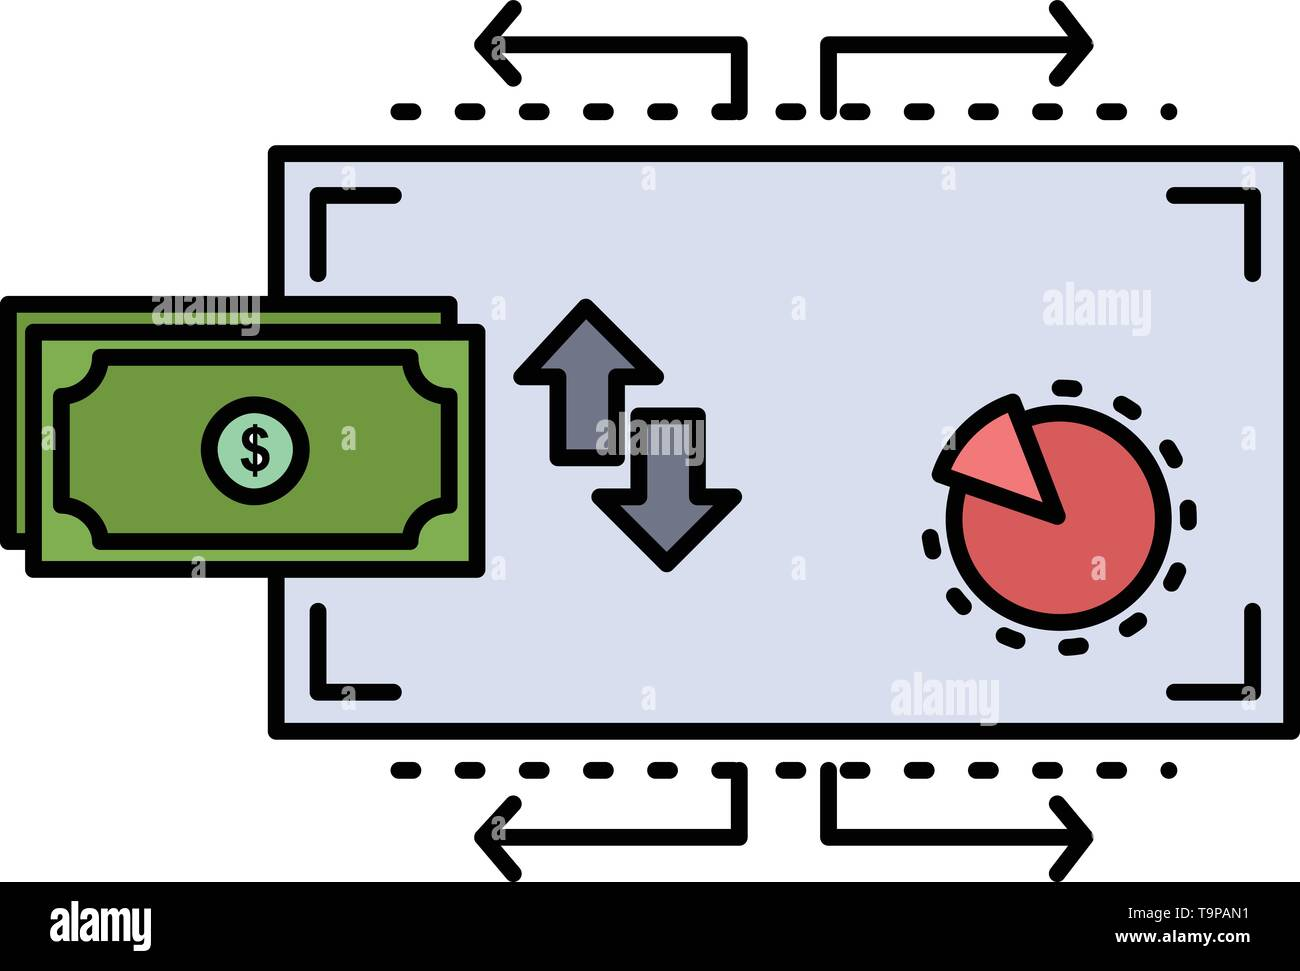 Finance, flow, marketing, money, payments Flat Color Icon Vector - Stock Image